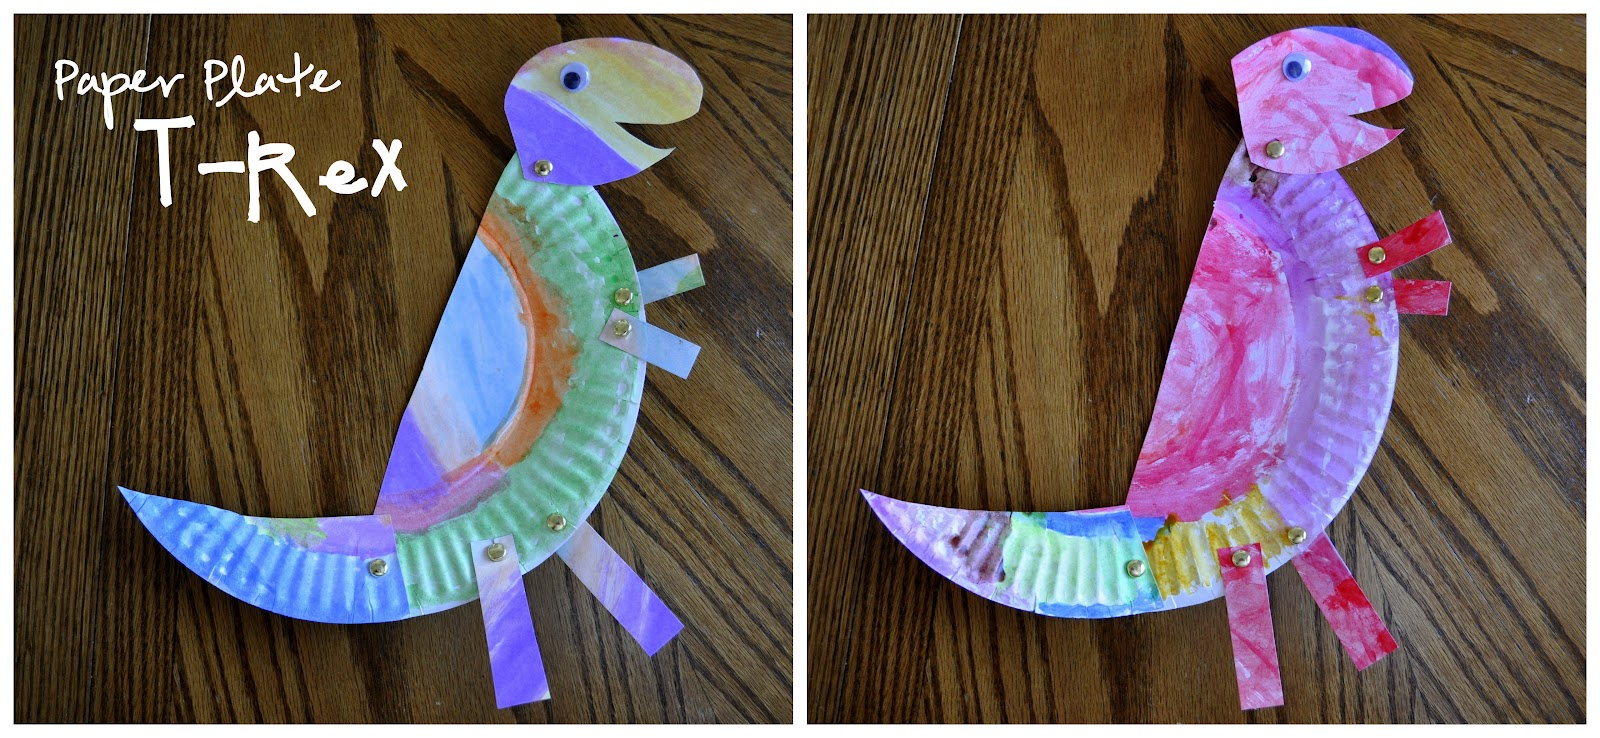 Paper Plate T-Rex  sc 1 st  I Heart Crafty Things & Paper Plate T-Rex | I Heart Crafty Things